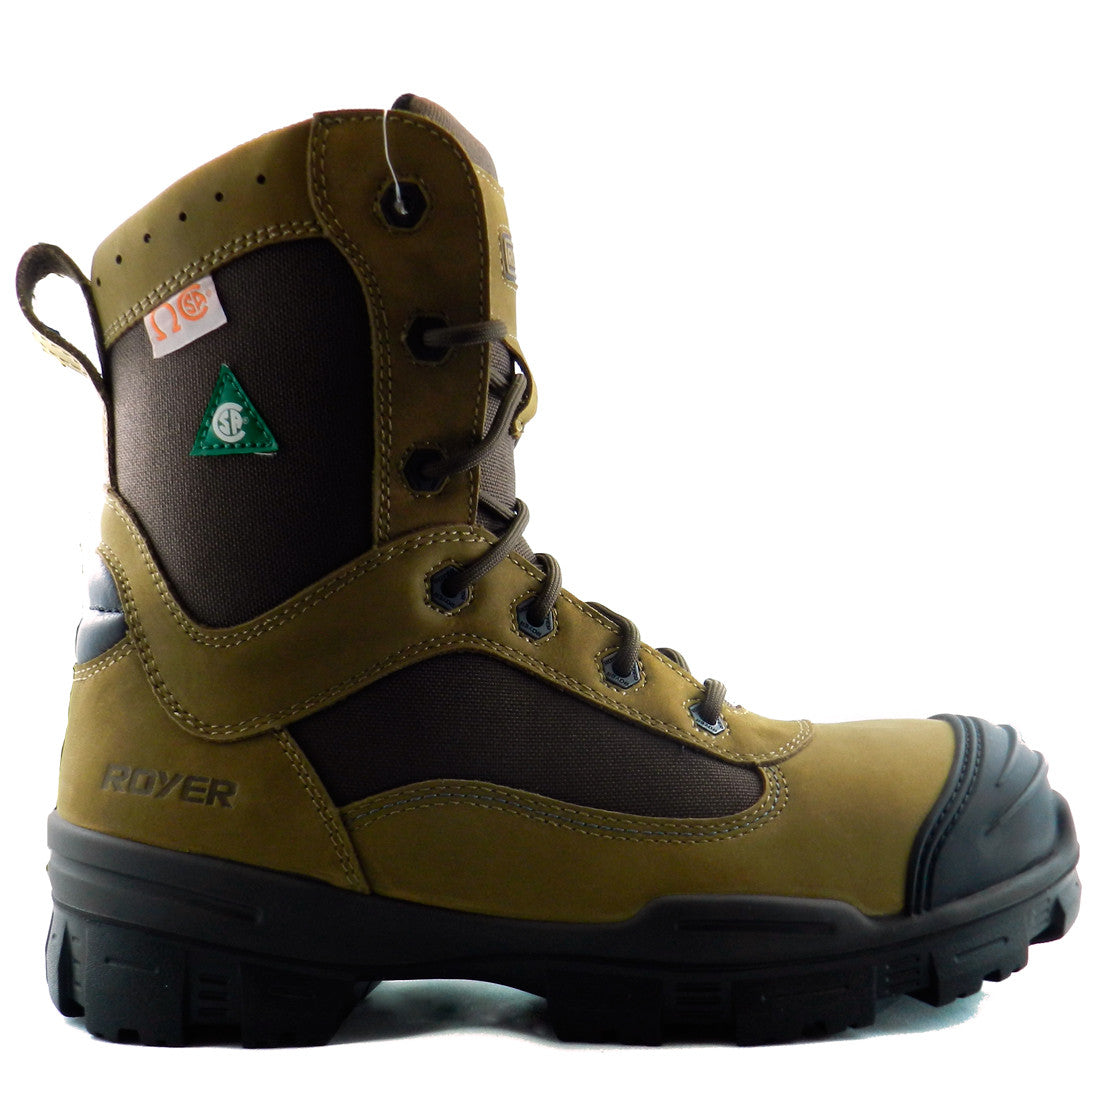 Royer 10-6220 Brun SANS MÉTAL Botte de travail Metal Free Safety Boots - Boutique du Cordonnier